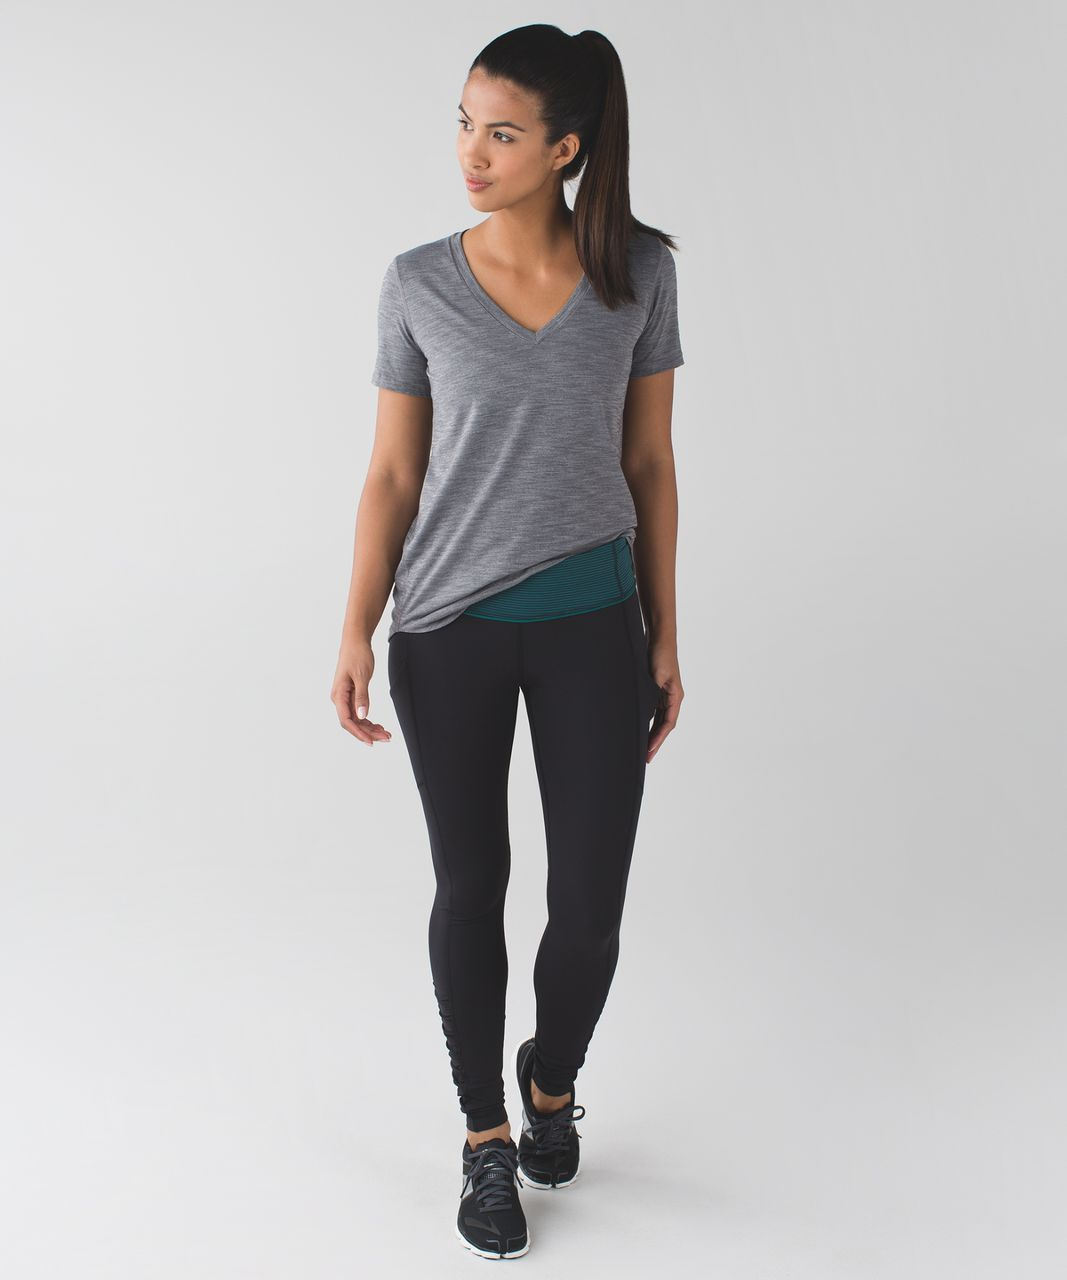 Lululemon Speed Tight IV *Brushed - Black / Mini Pop Stripe Dark Fuel Forage Teal